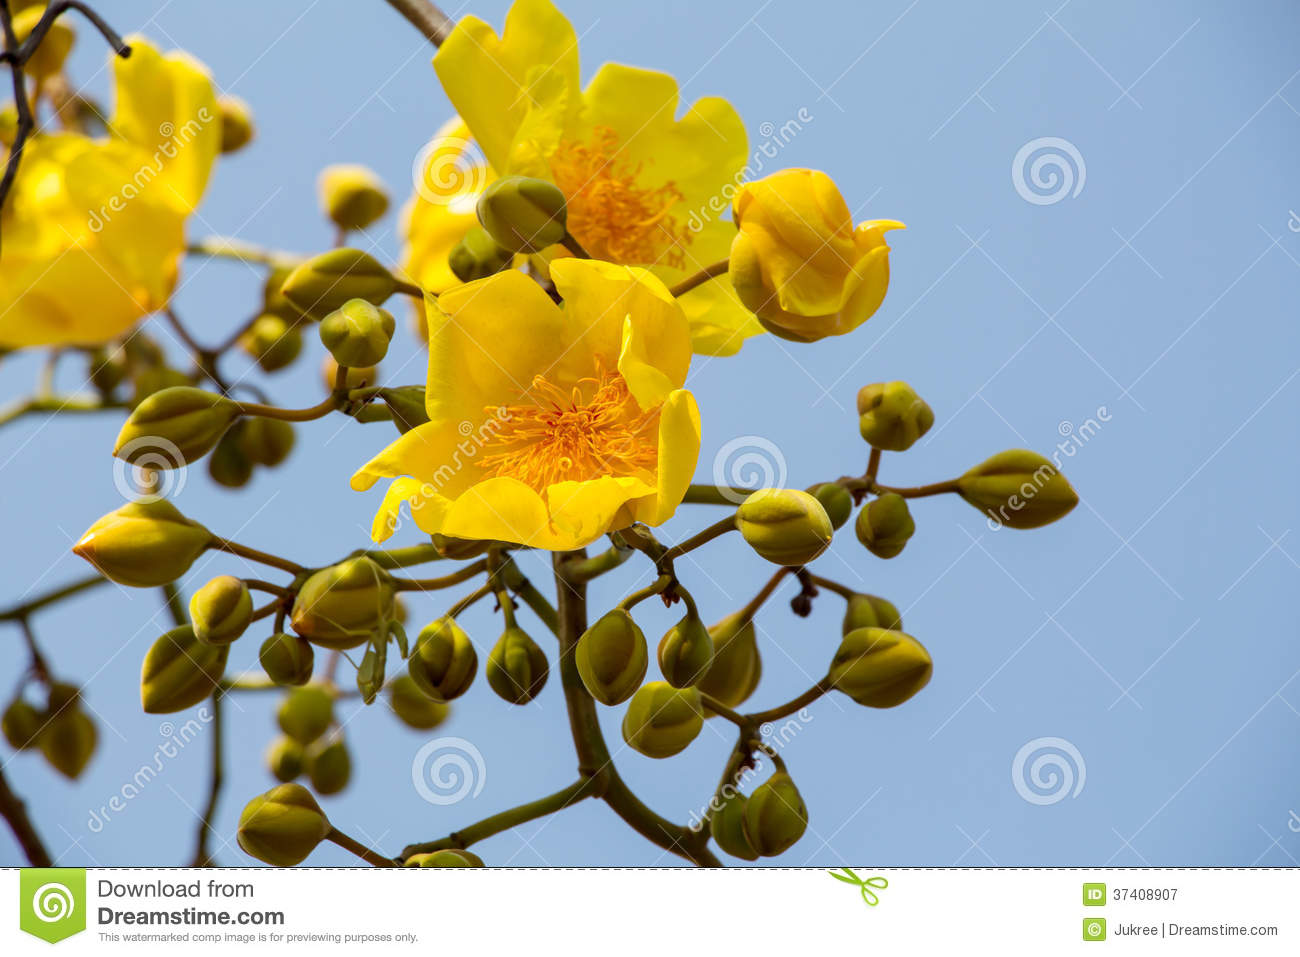 Yellow silk cotton tree flower royalty free stock photography image 37408907 - Trees that bloom yellow flowers ...